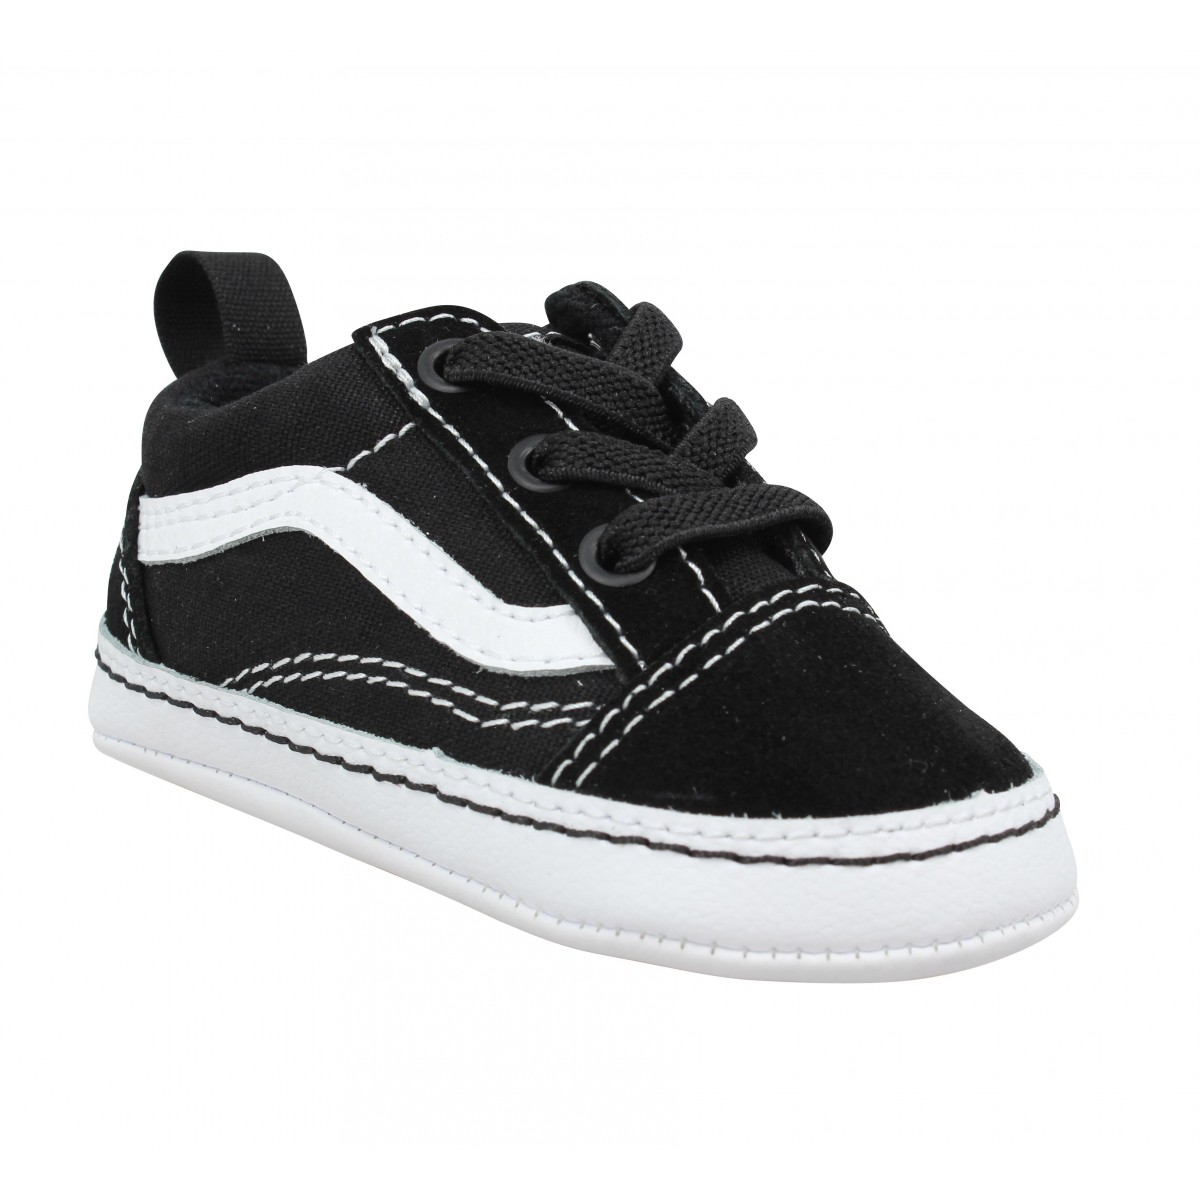 Baskets VANS Old Skool Crib velours toile Enfant Noir